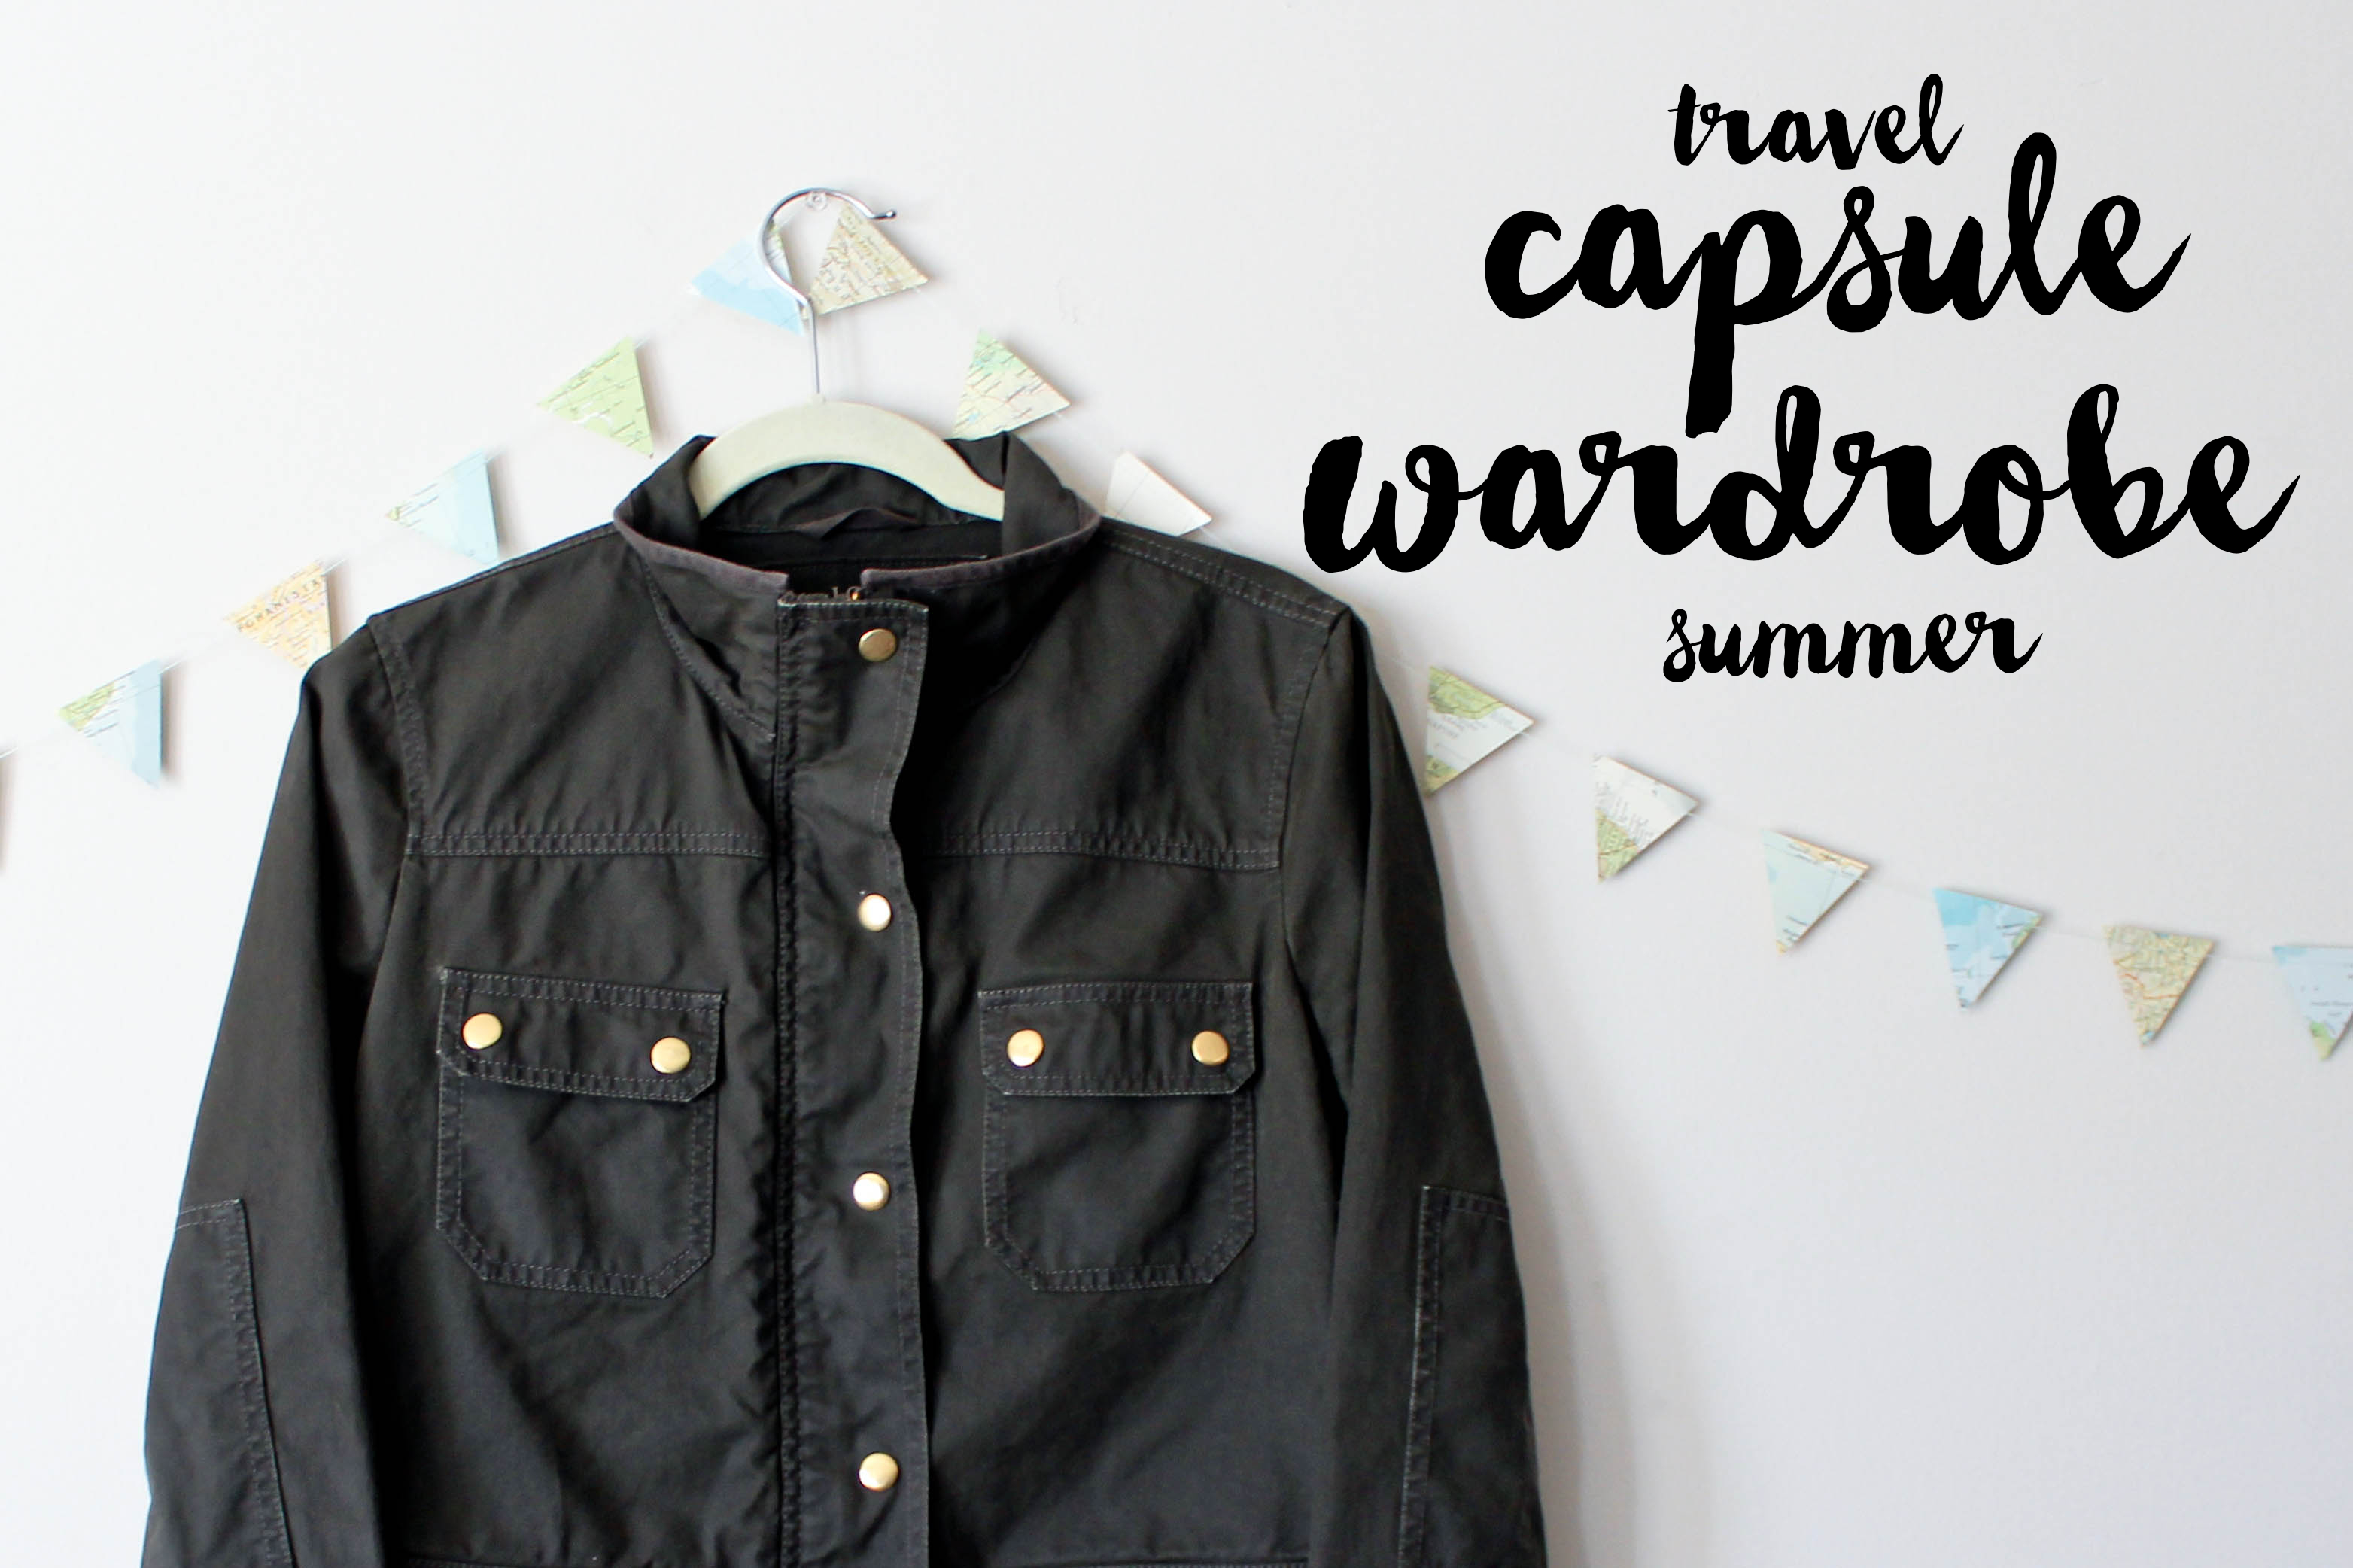 Travel Summer Capsule Wardrobe